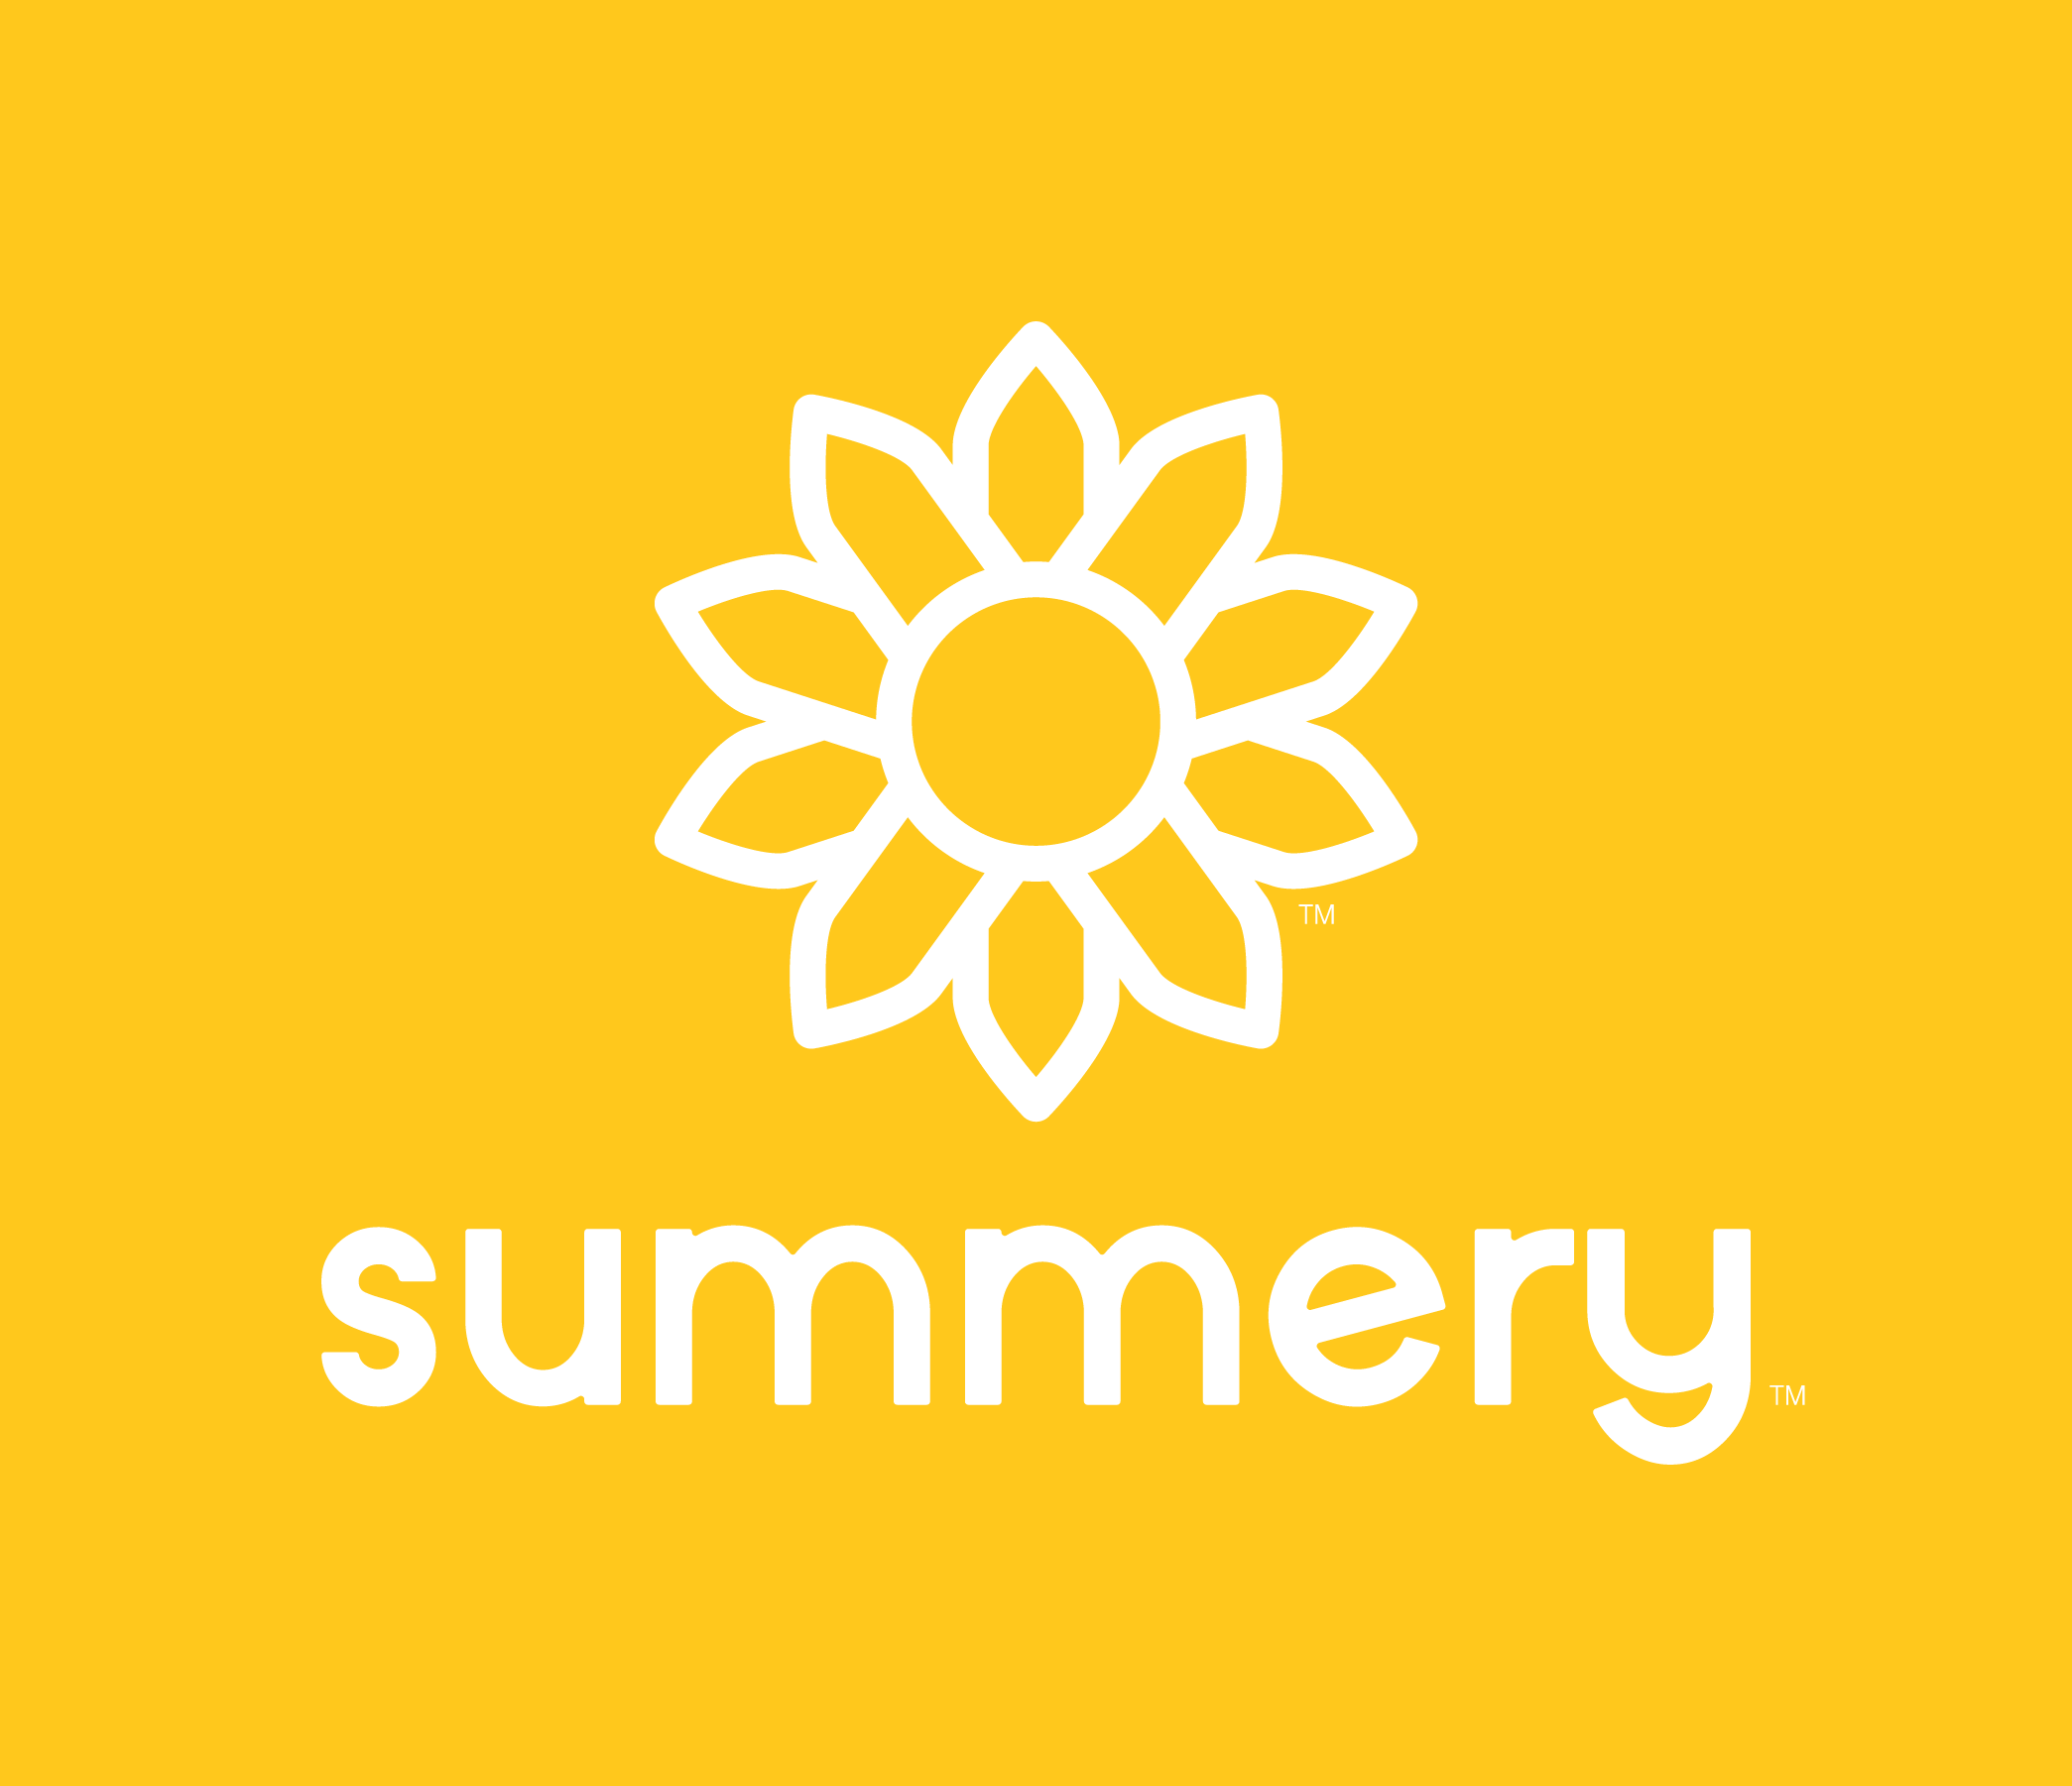 Summery.Stacked-WoY-TM.png